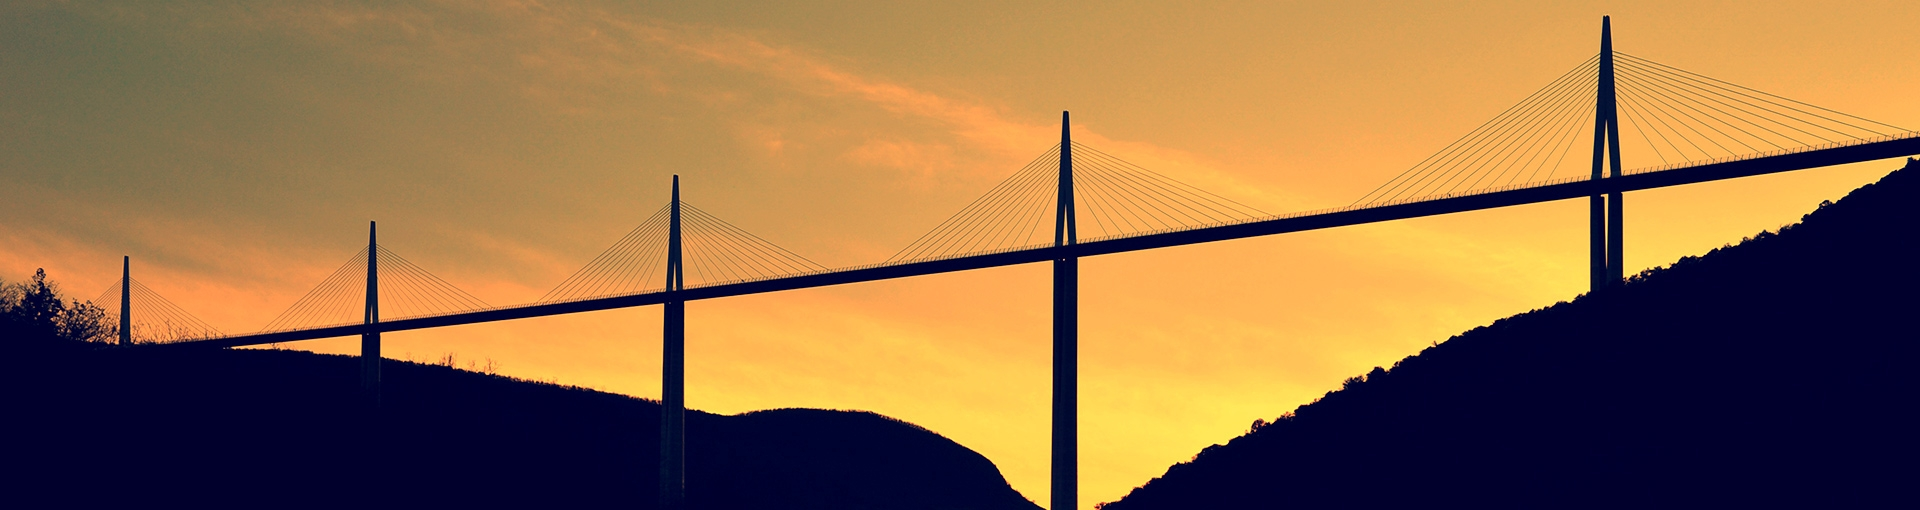 Millau Viaduct at dusk